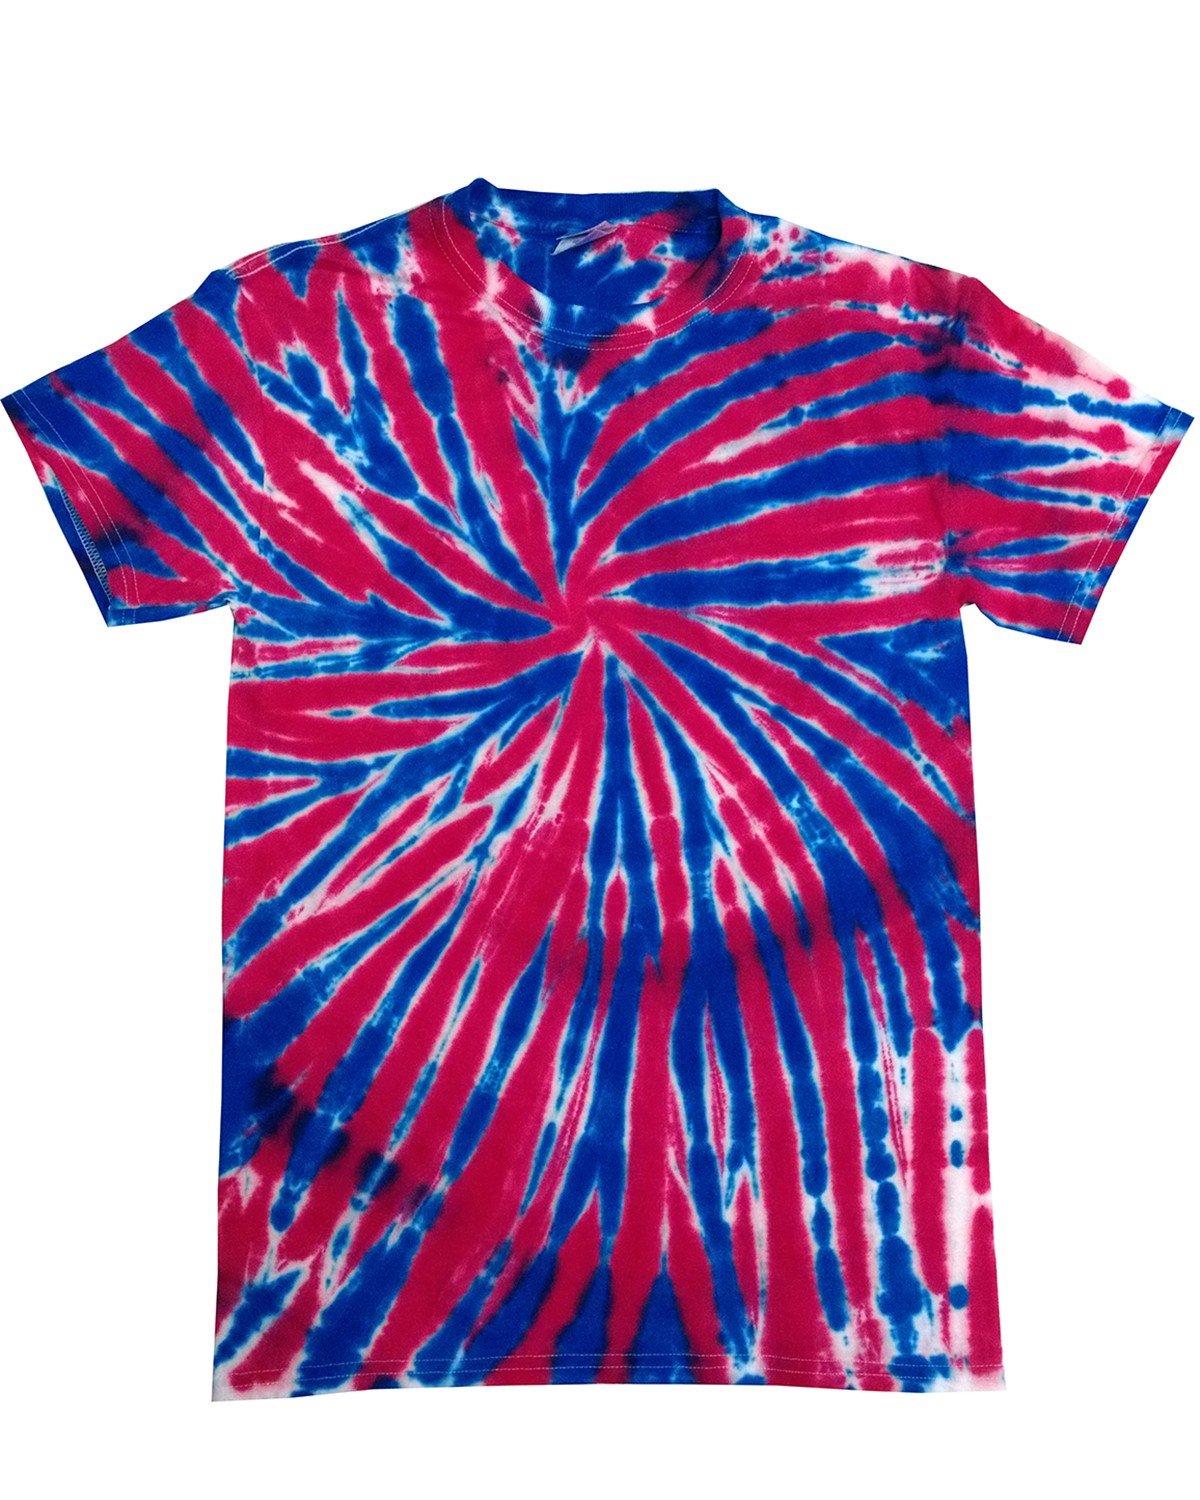 CD100 Tie-Dye UNION JACK